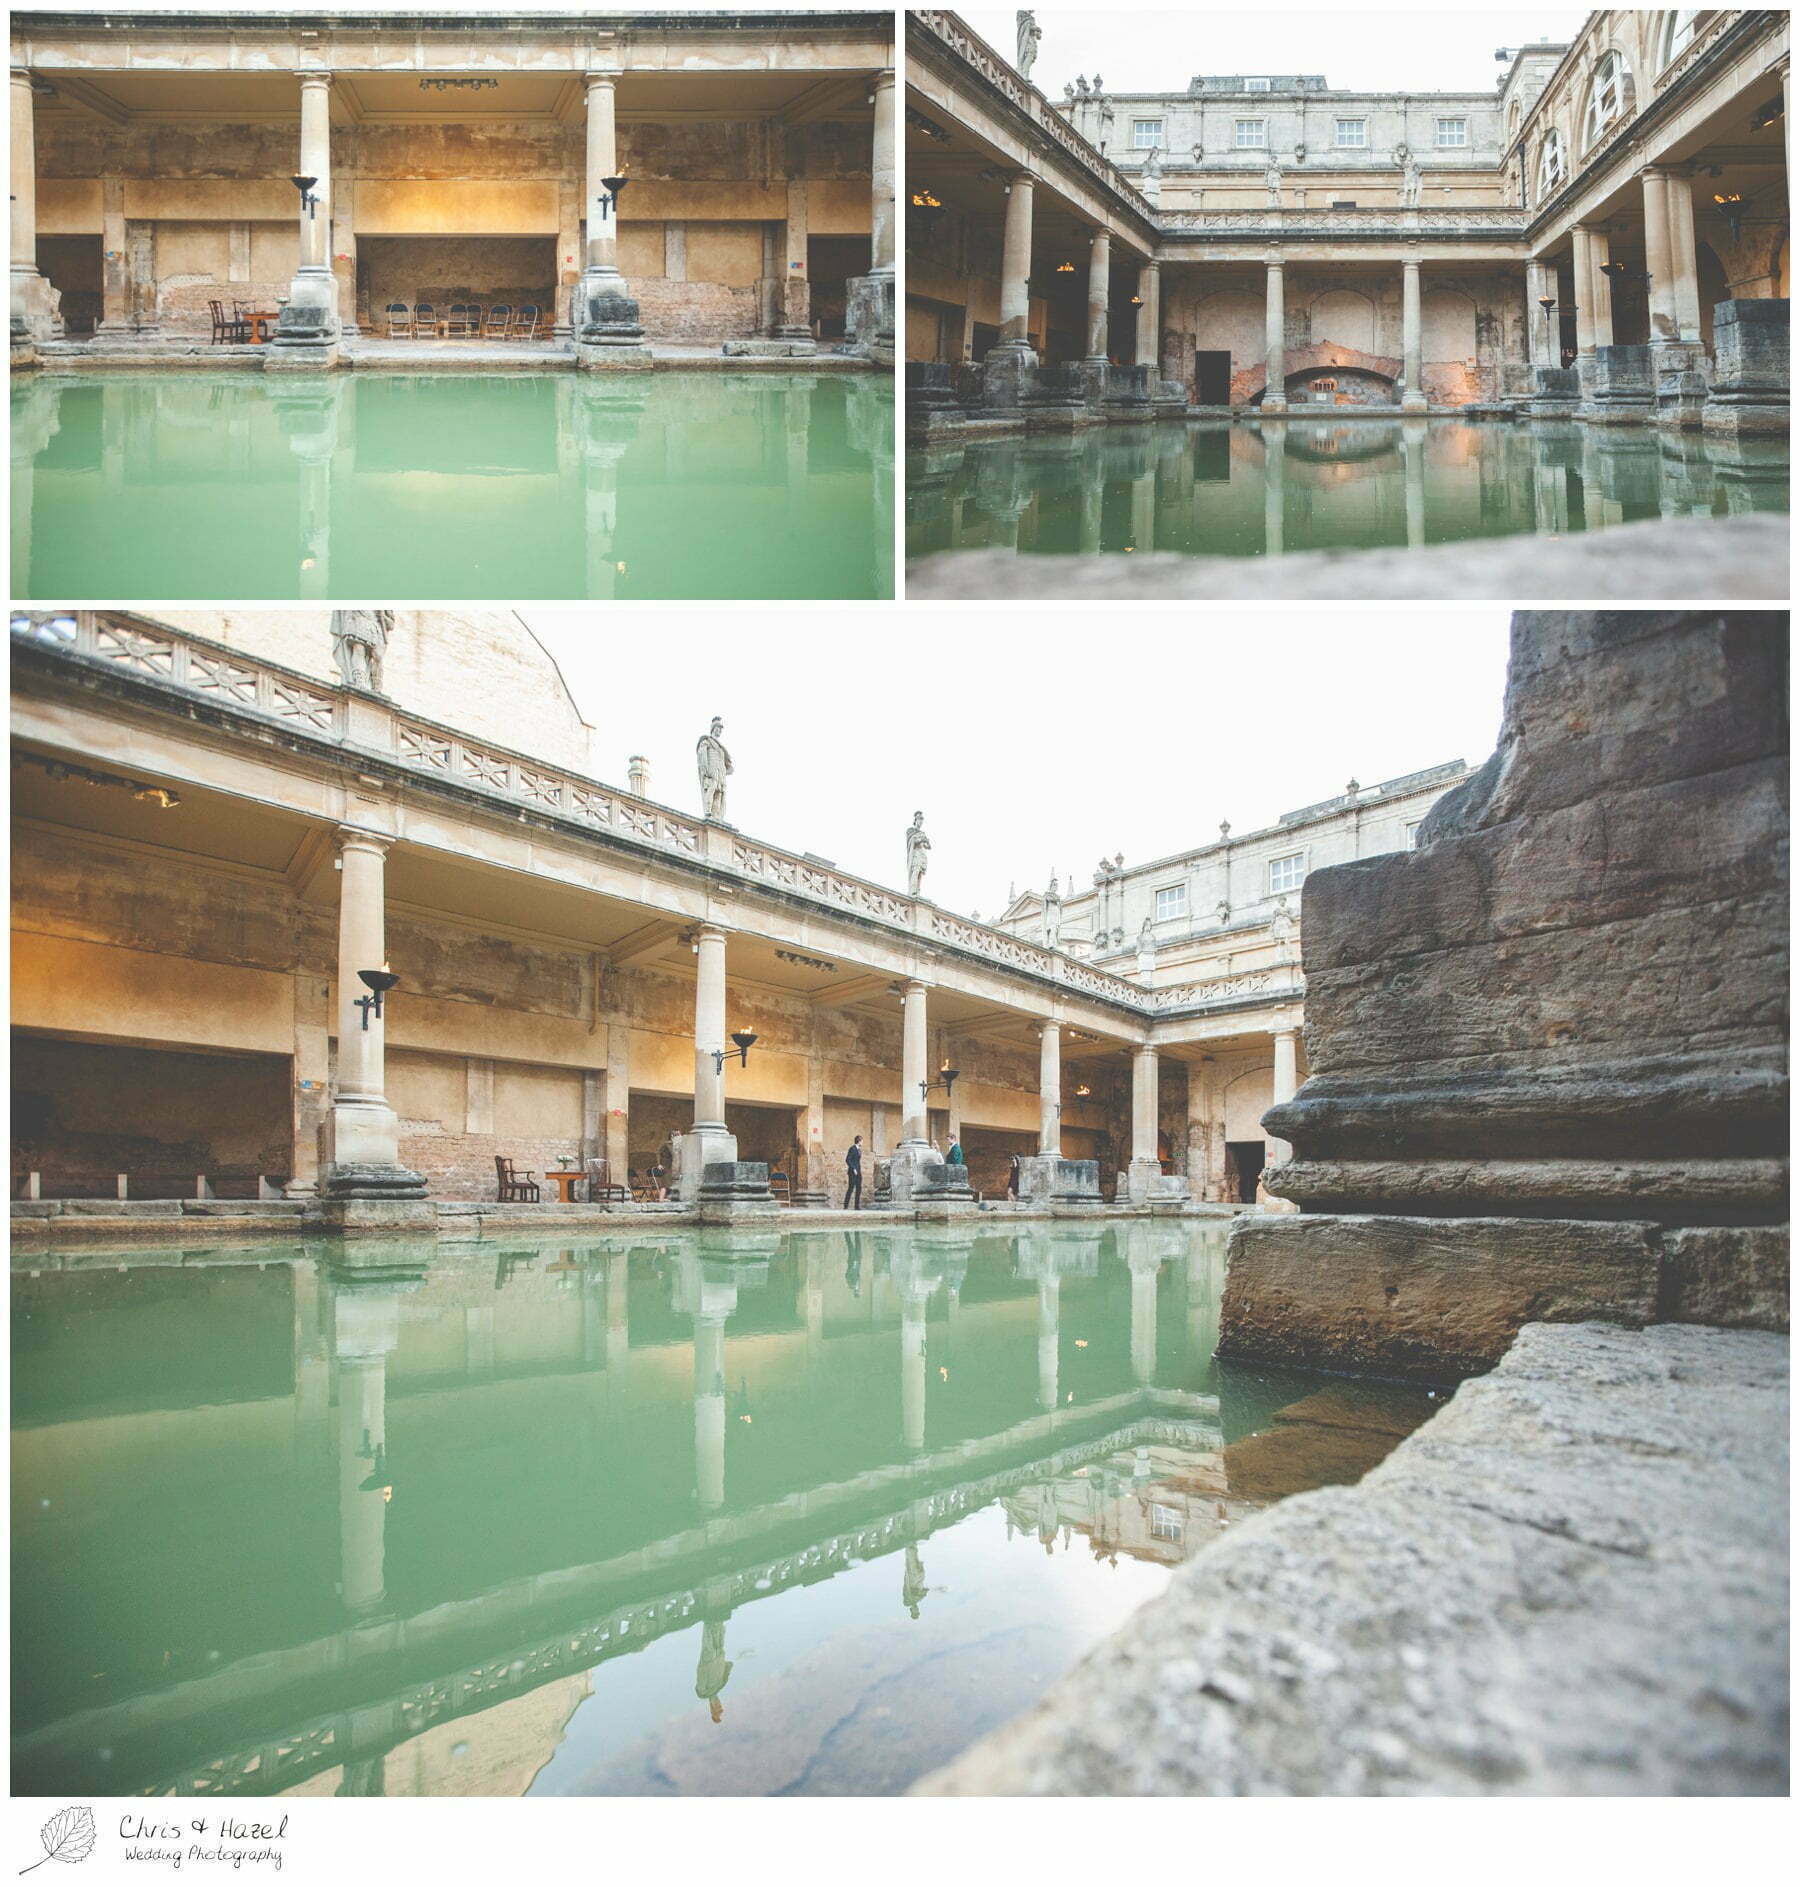 Roman Baths water architecture spa, The Roman Baths Wedding Photography, Roman Baths Wedding Photographer, Wedding in Bath, Bath Wedding Day, documentary wedding photography, Chris and Hazel Wedding Photography Bath, Andy Frost Sian Upson